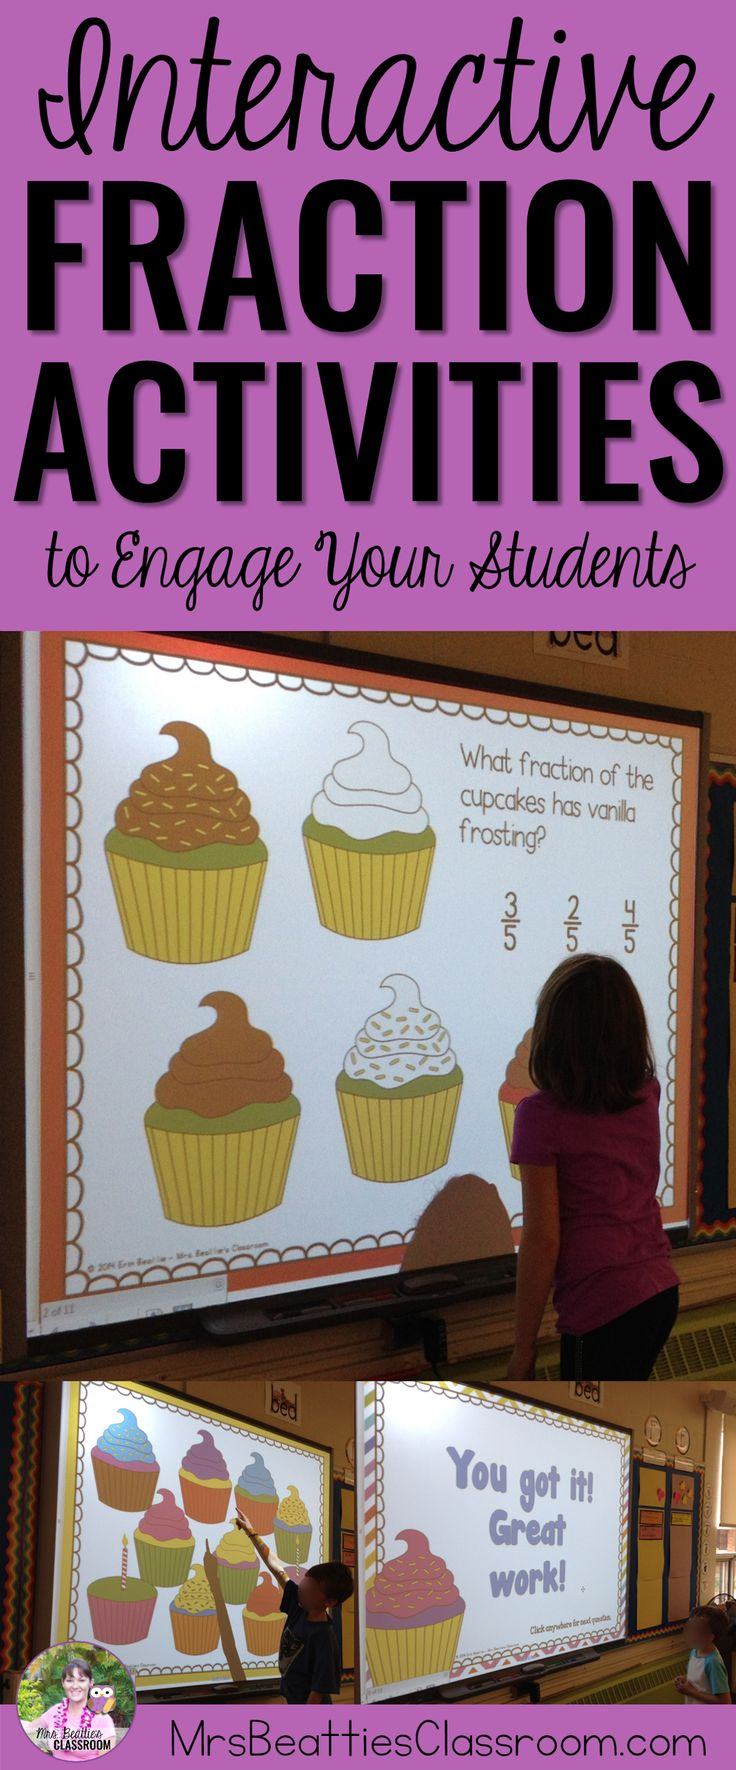 These fun, interactive fractions activities are perfect for my 3rd grade students learning about fractions of a set. ItiIncludes an interactive SMART Board file and follow-up worksheets that make learning fun!